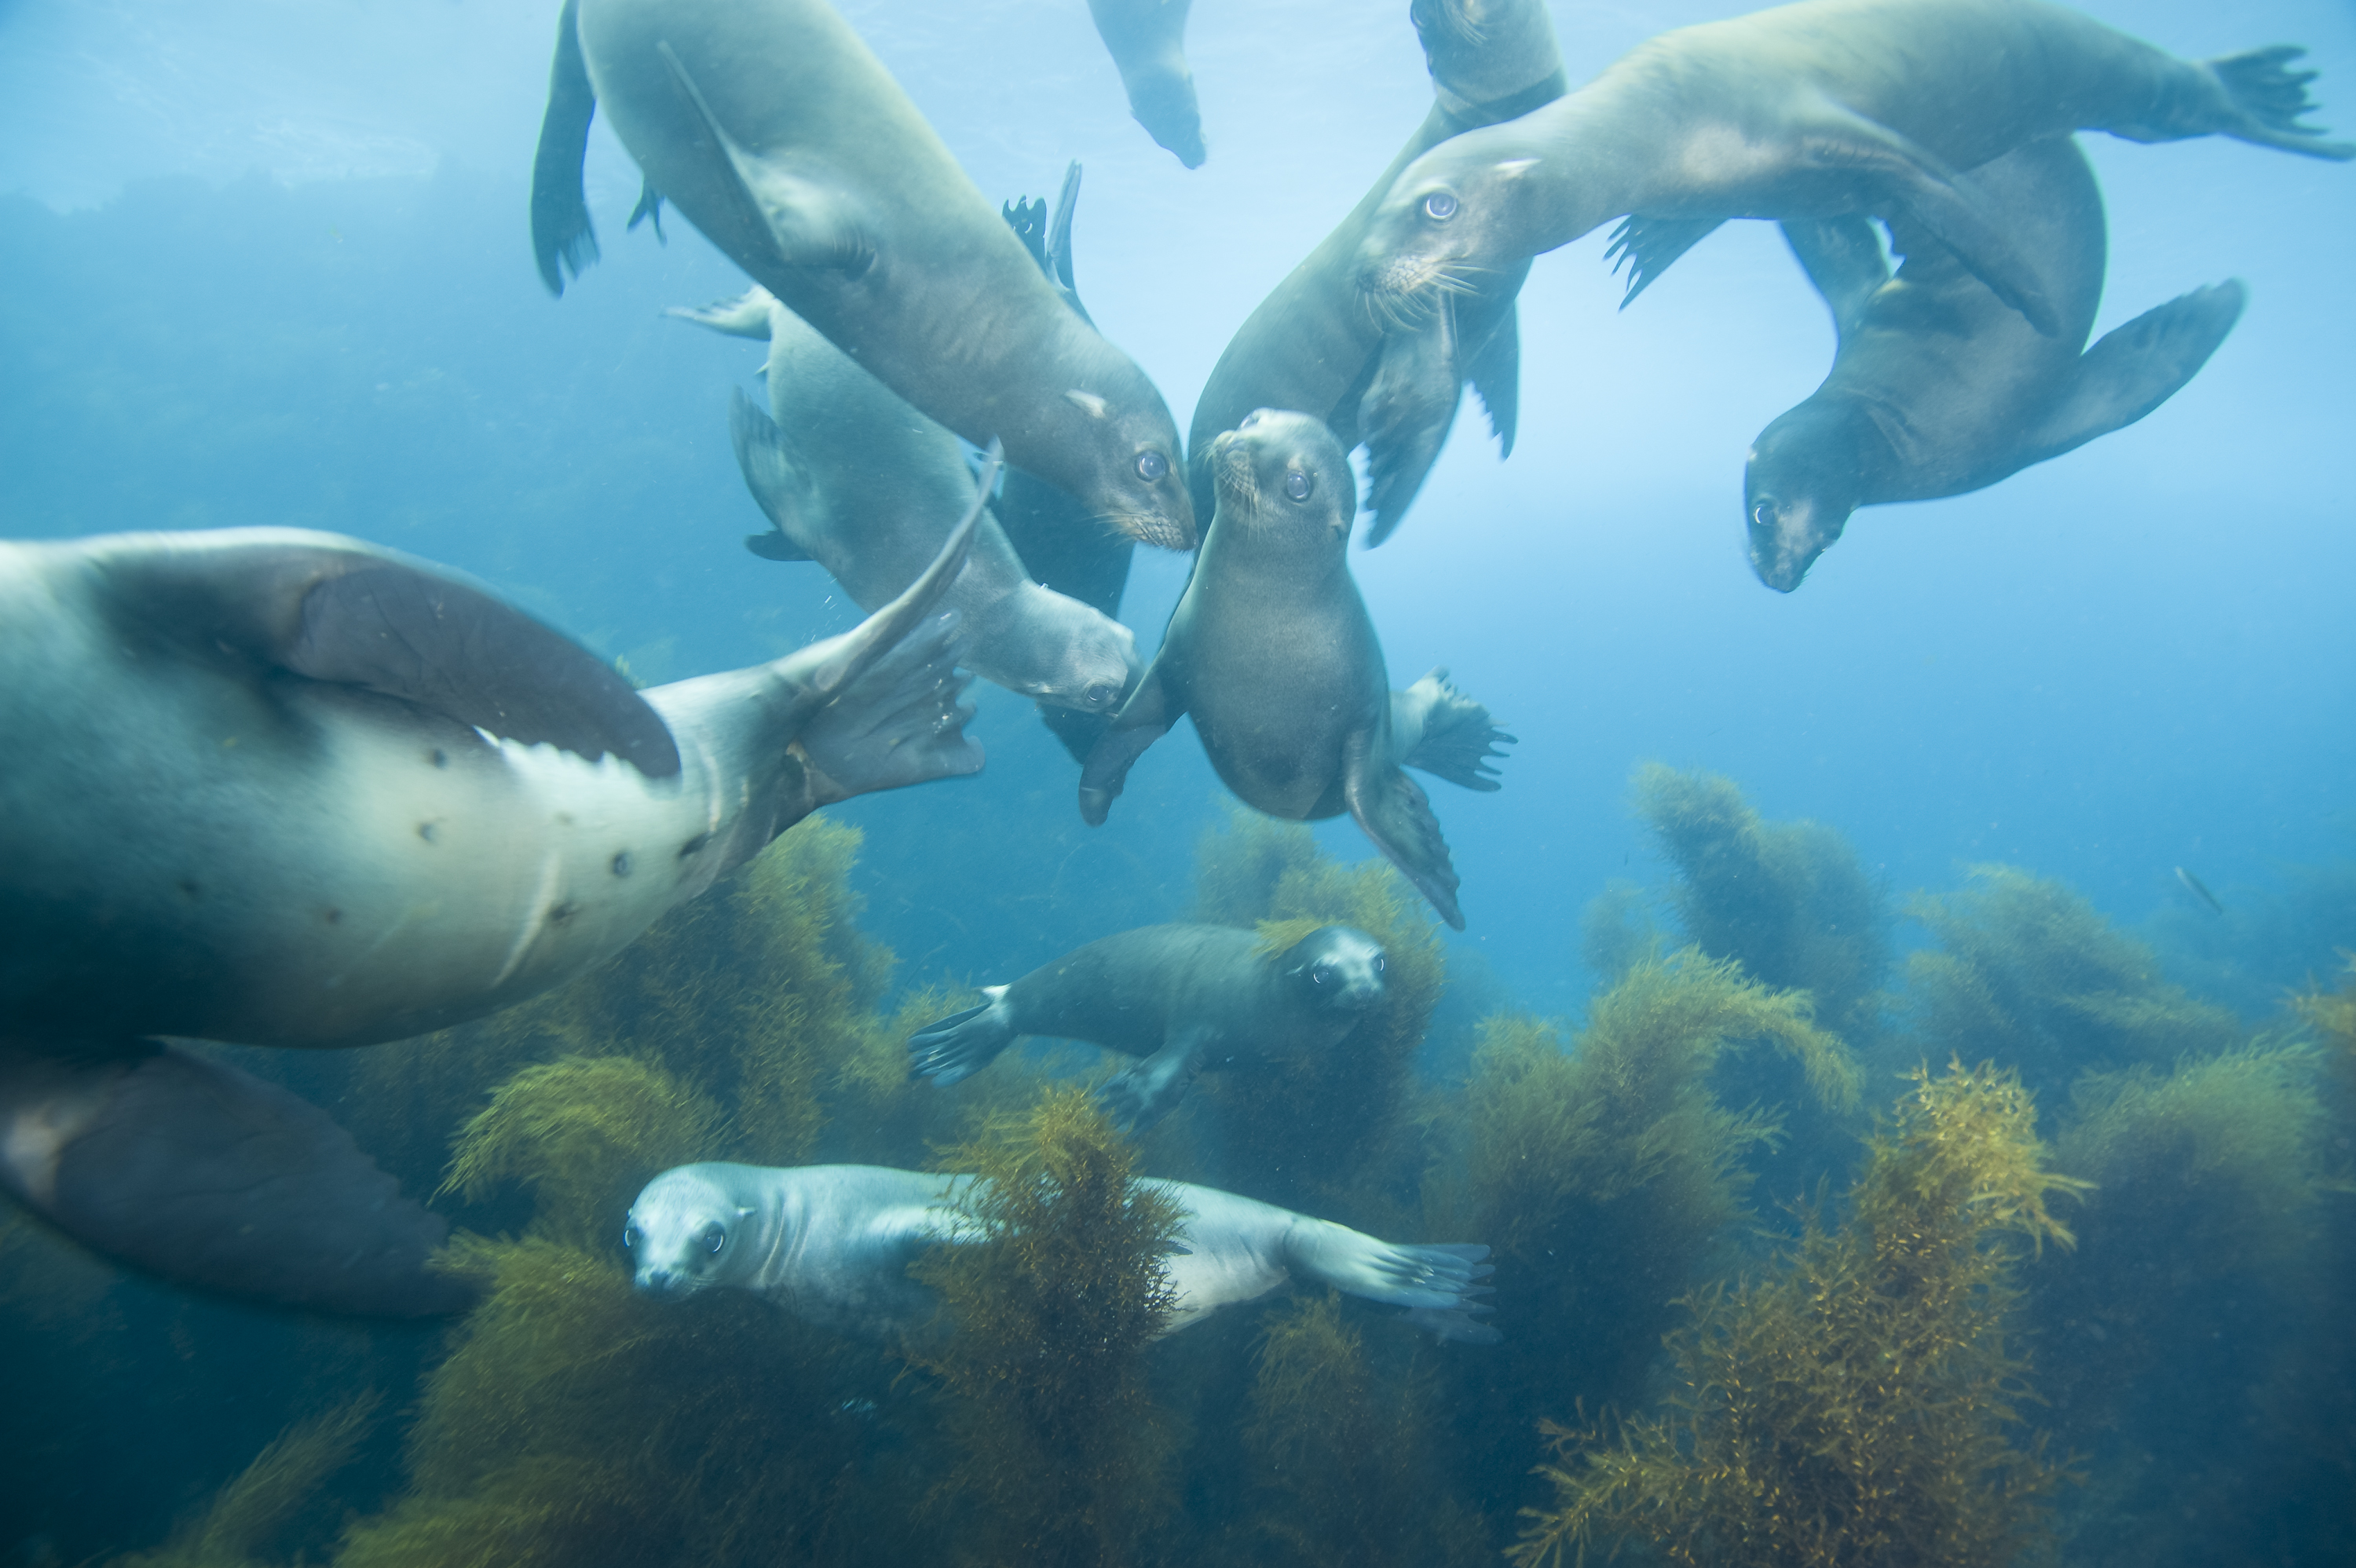 California sea lions at Coronado Islands, Mexico, by Matthew Meier